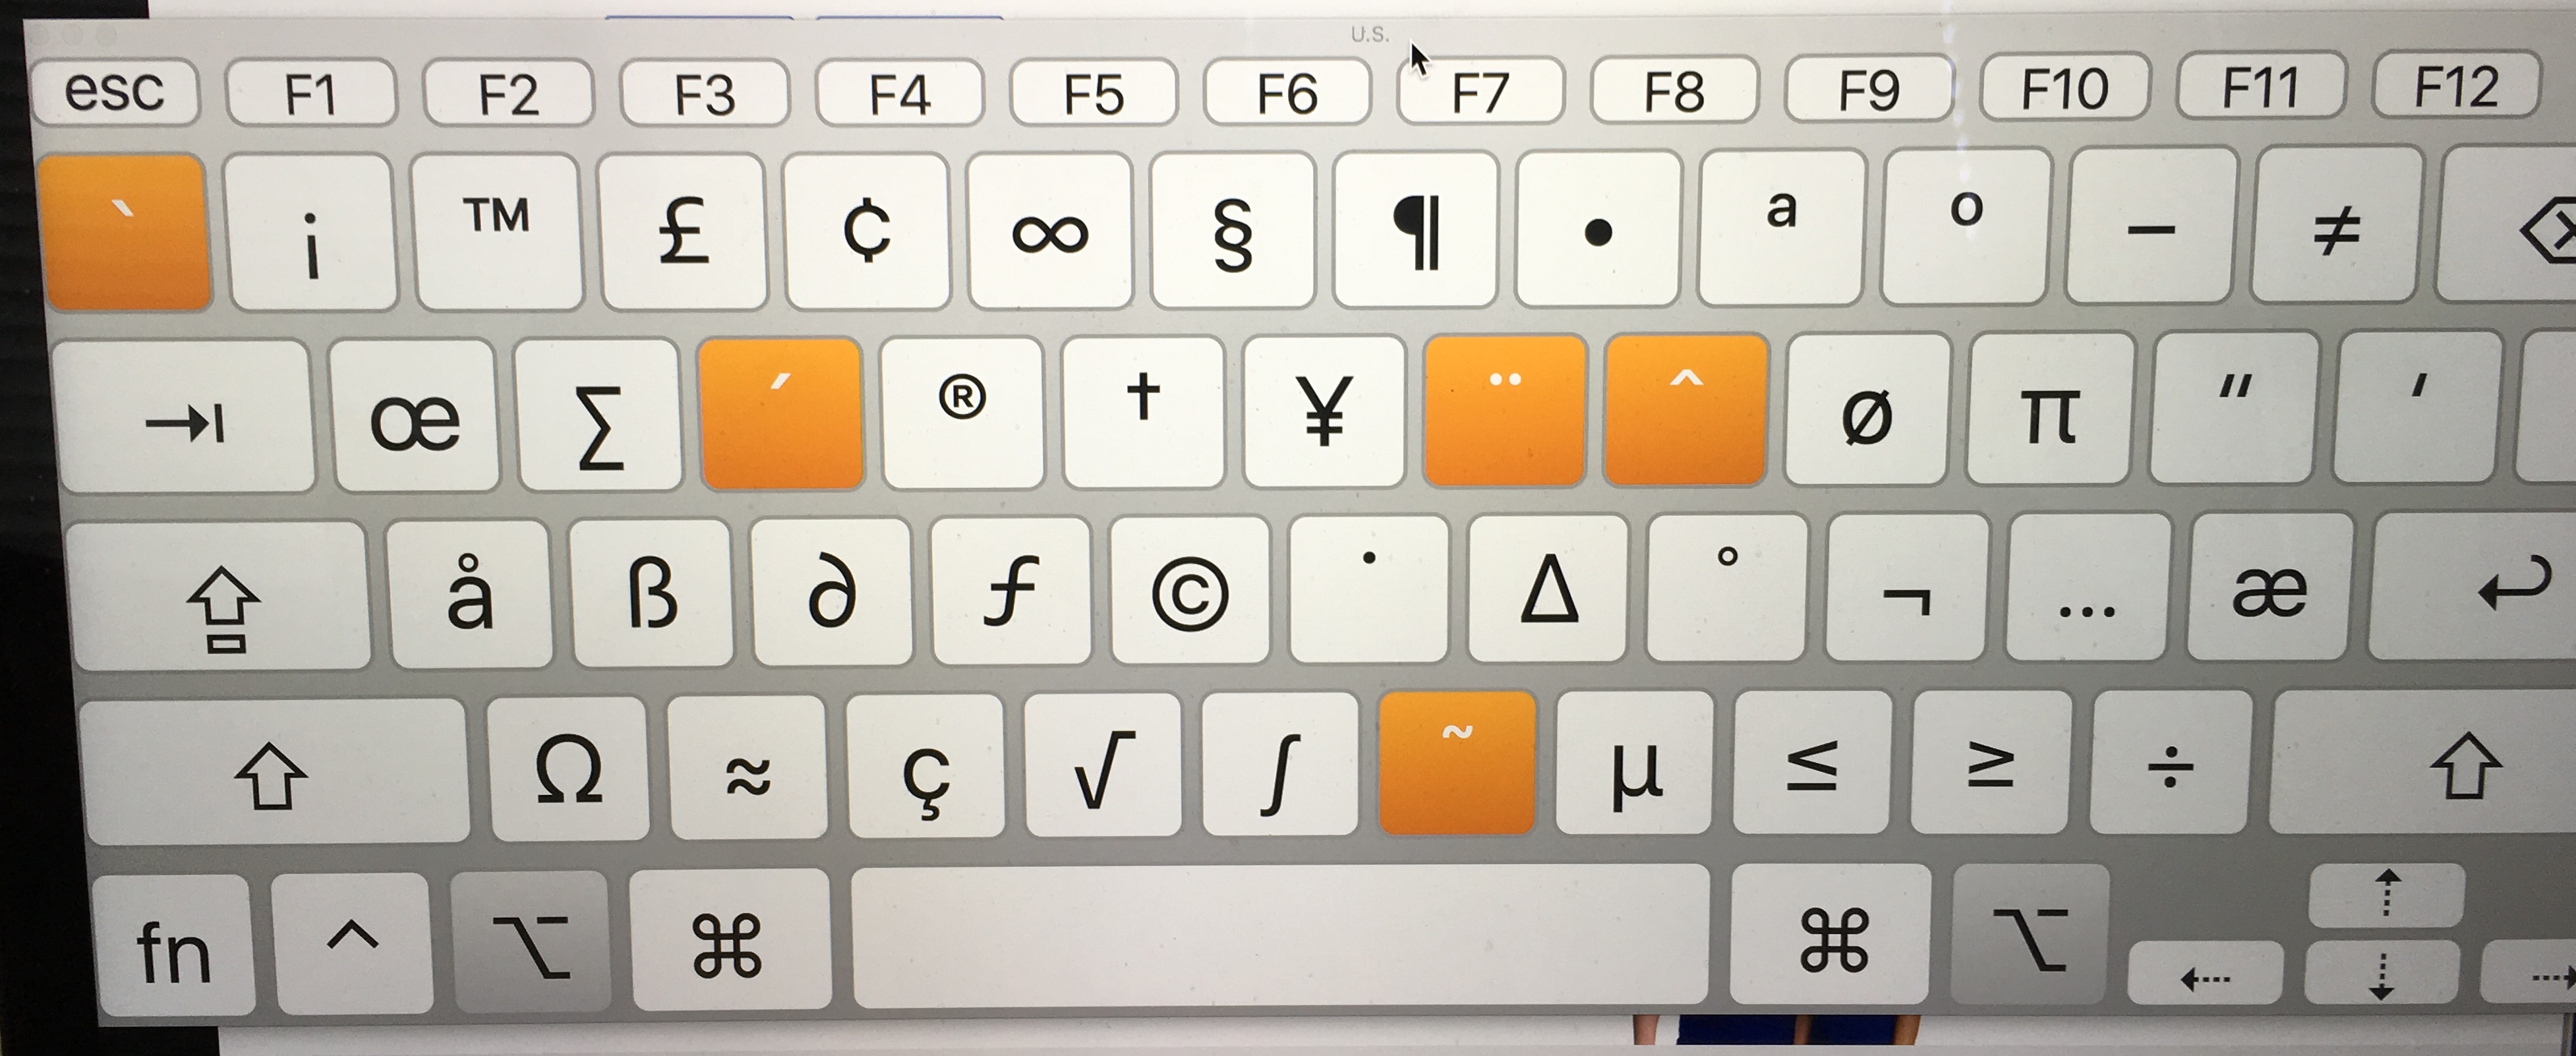 How To Make The Degree Symbol On A Keyboard Images Meaning Of This